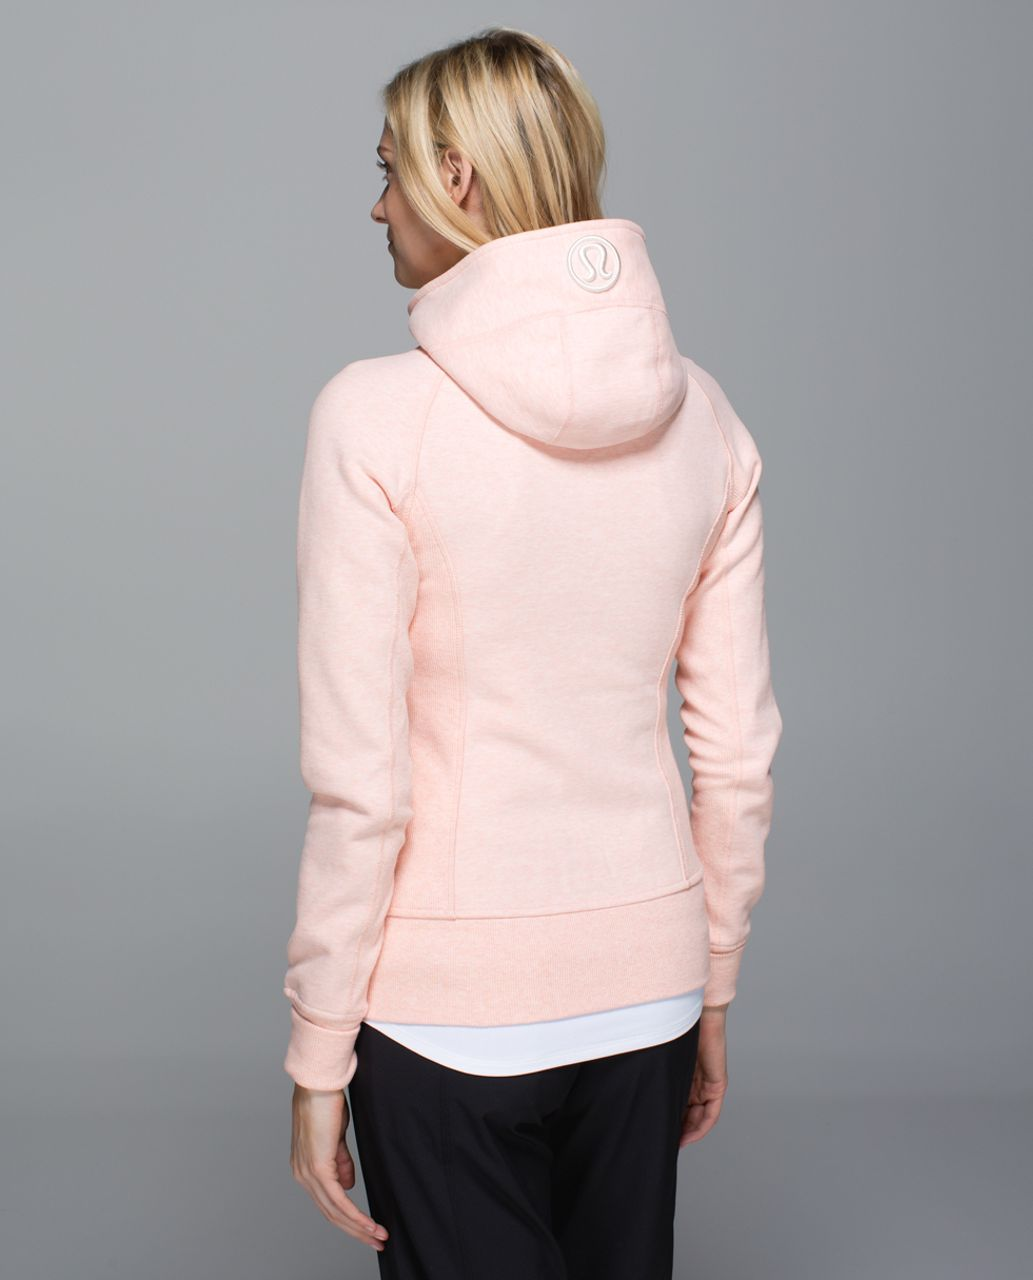 Lululemon Scuba Hoodie II - Heathered Blush Quartz / Angel Wing